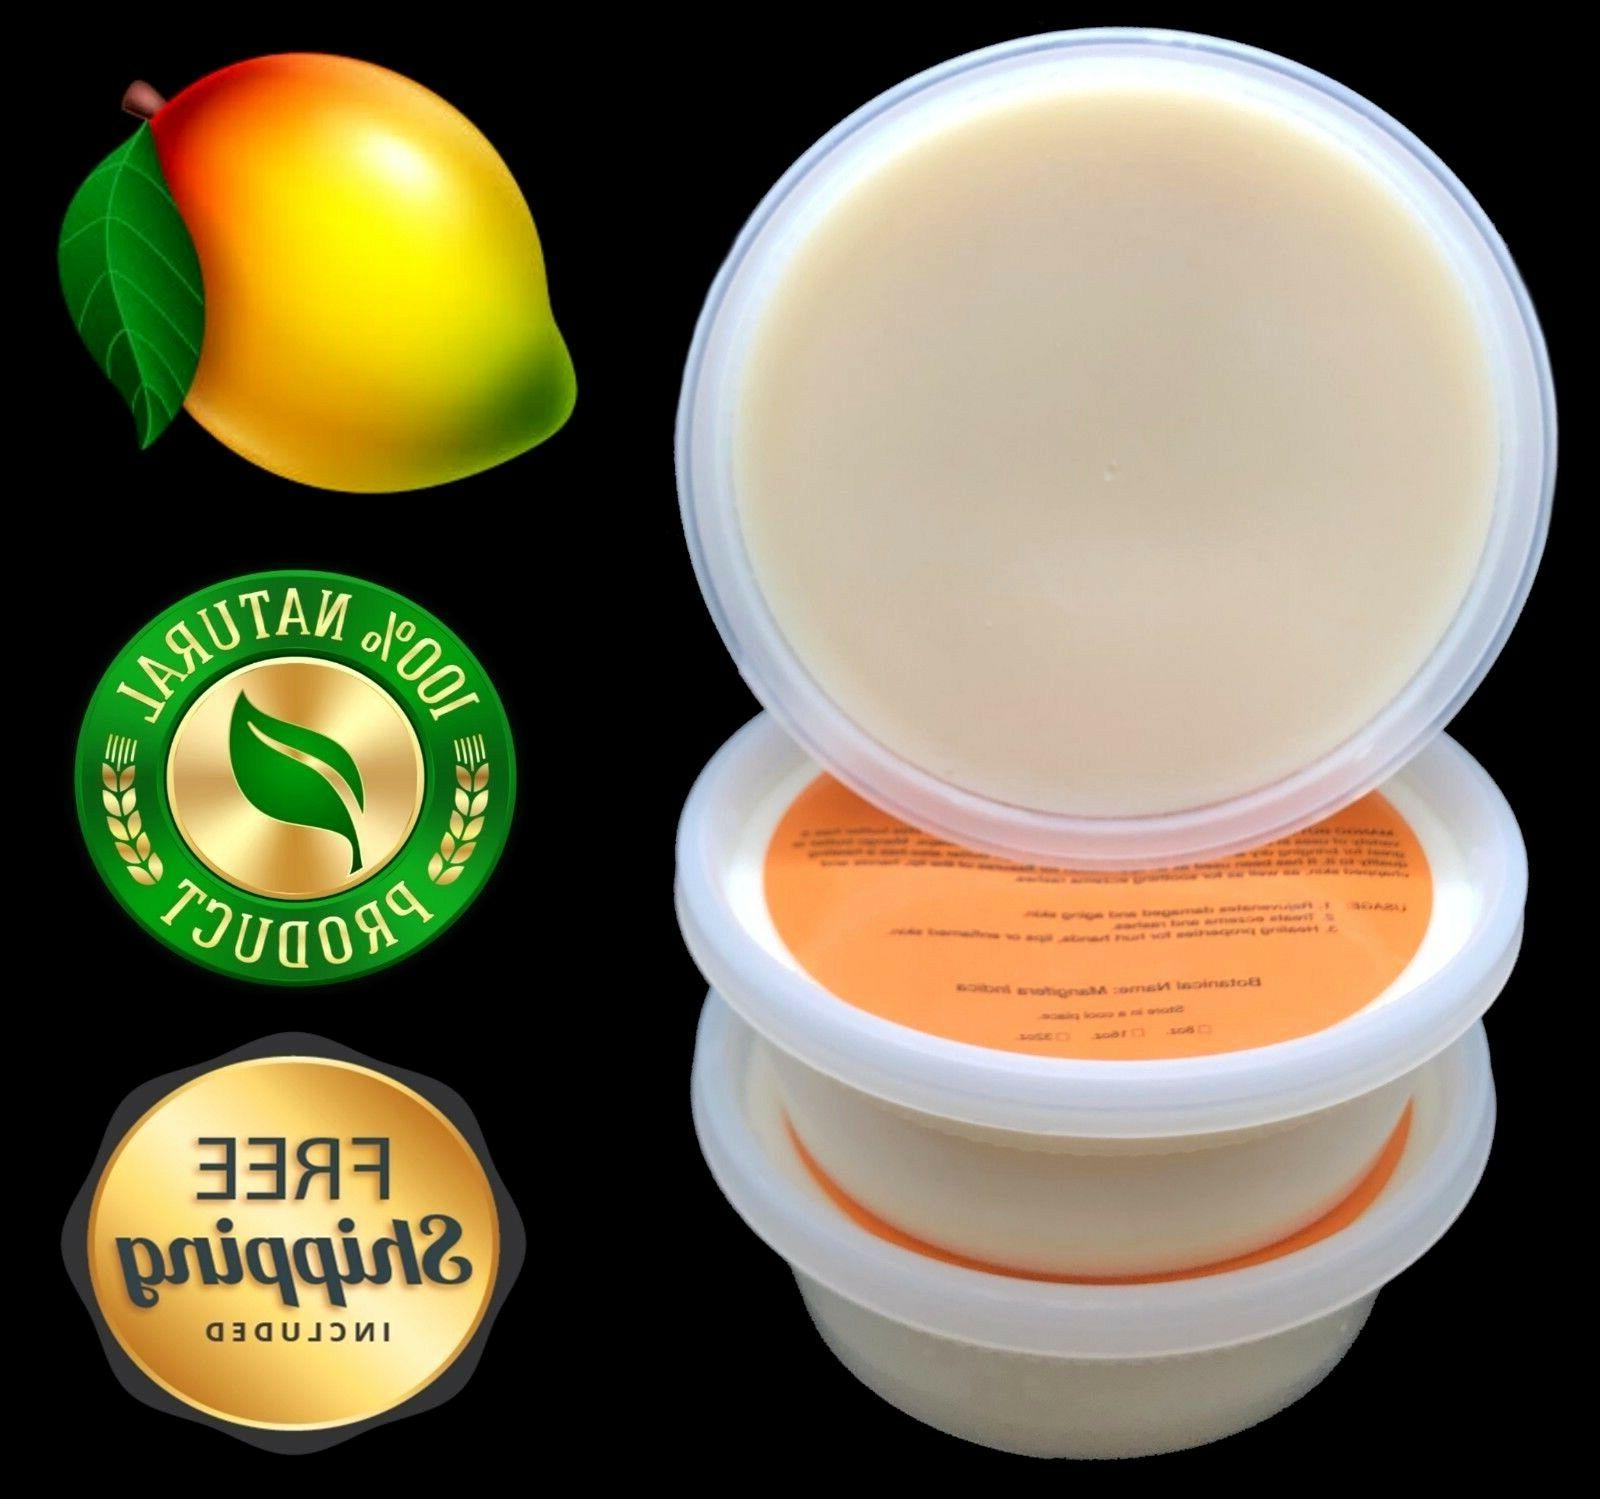 Mango Butter 8 oz. Pure Organic For Skin, Body, Hair